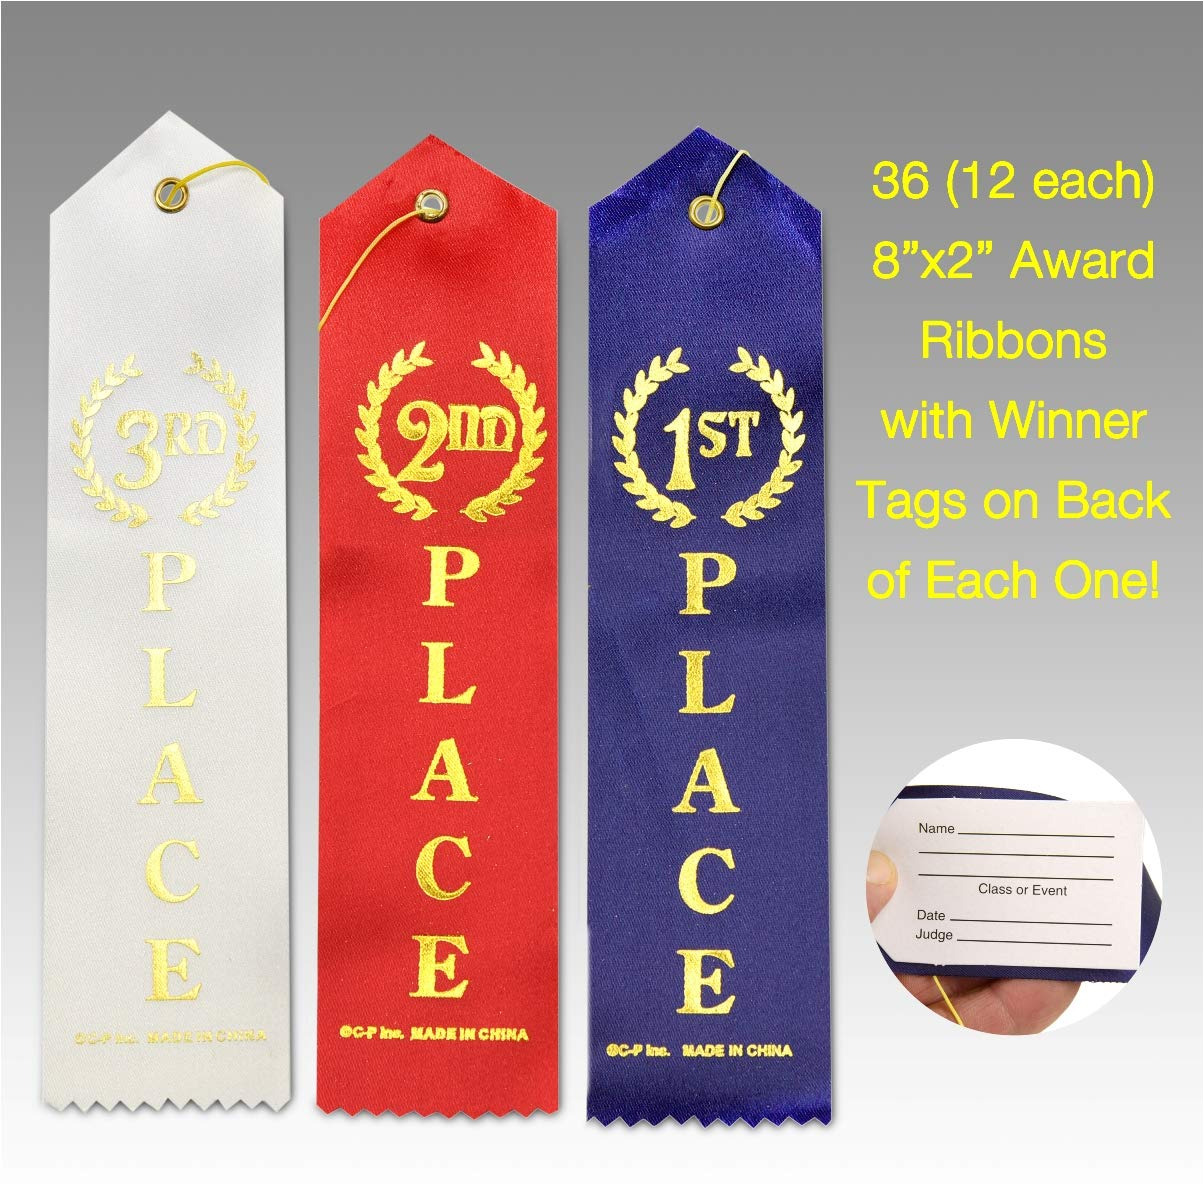 J&J's ToyScape 36 Pcs Award Ribbons with a Card and String (1st Place (Blue), 2nd Place (Red), 3rd Place (White) - 12 Each; Size: 8.6'') Sport Competition's Award Ribbons, Talent Show Ribbons